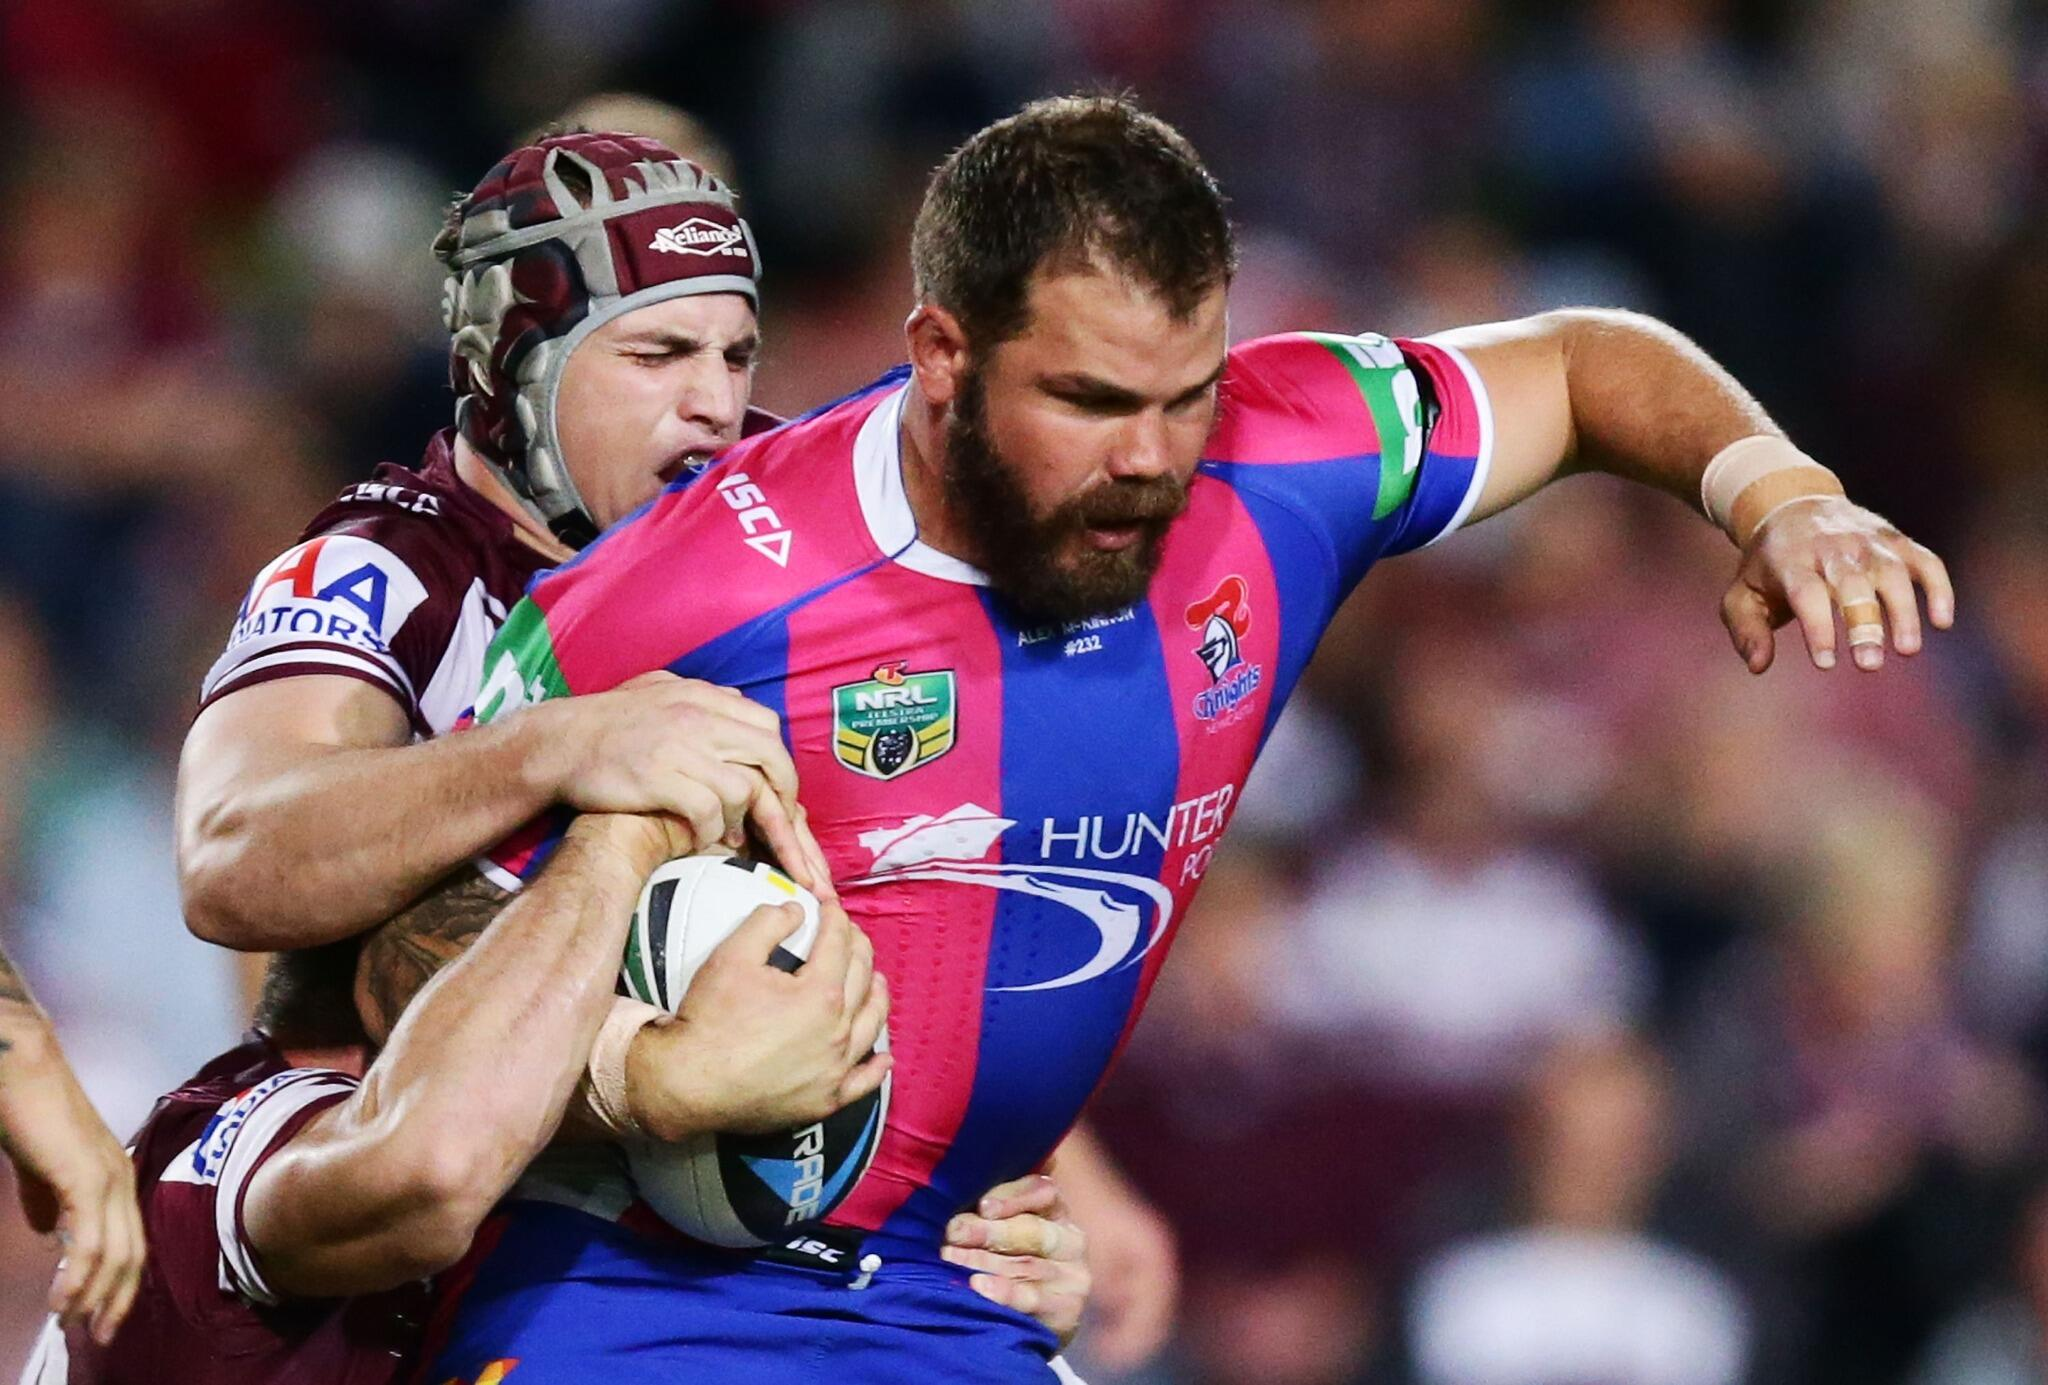 Leeds Rhinos sign Newcastle Knights prop Adam Cuthbertson, 29, on a four-year contract http://t.co/NngiR4LqgP